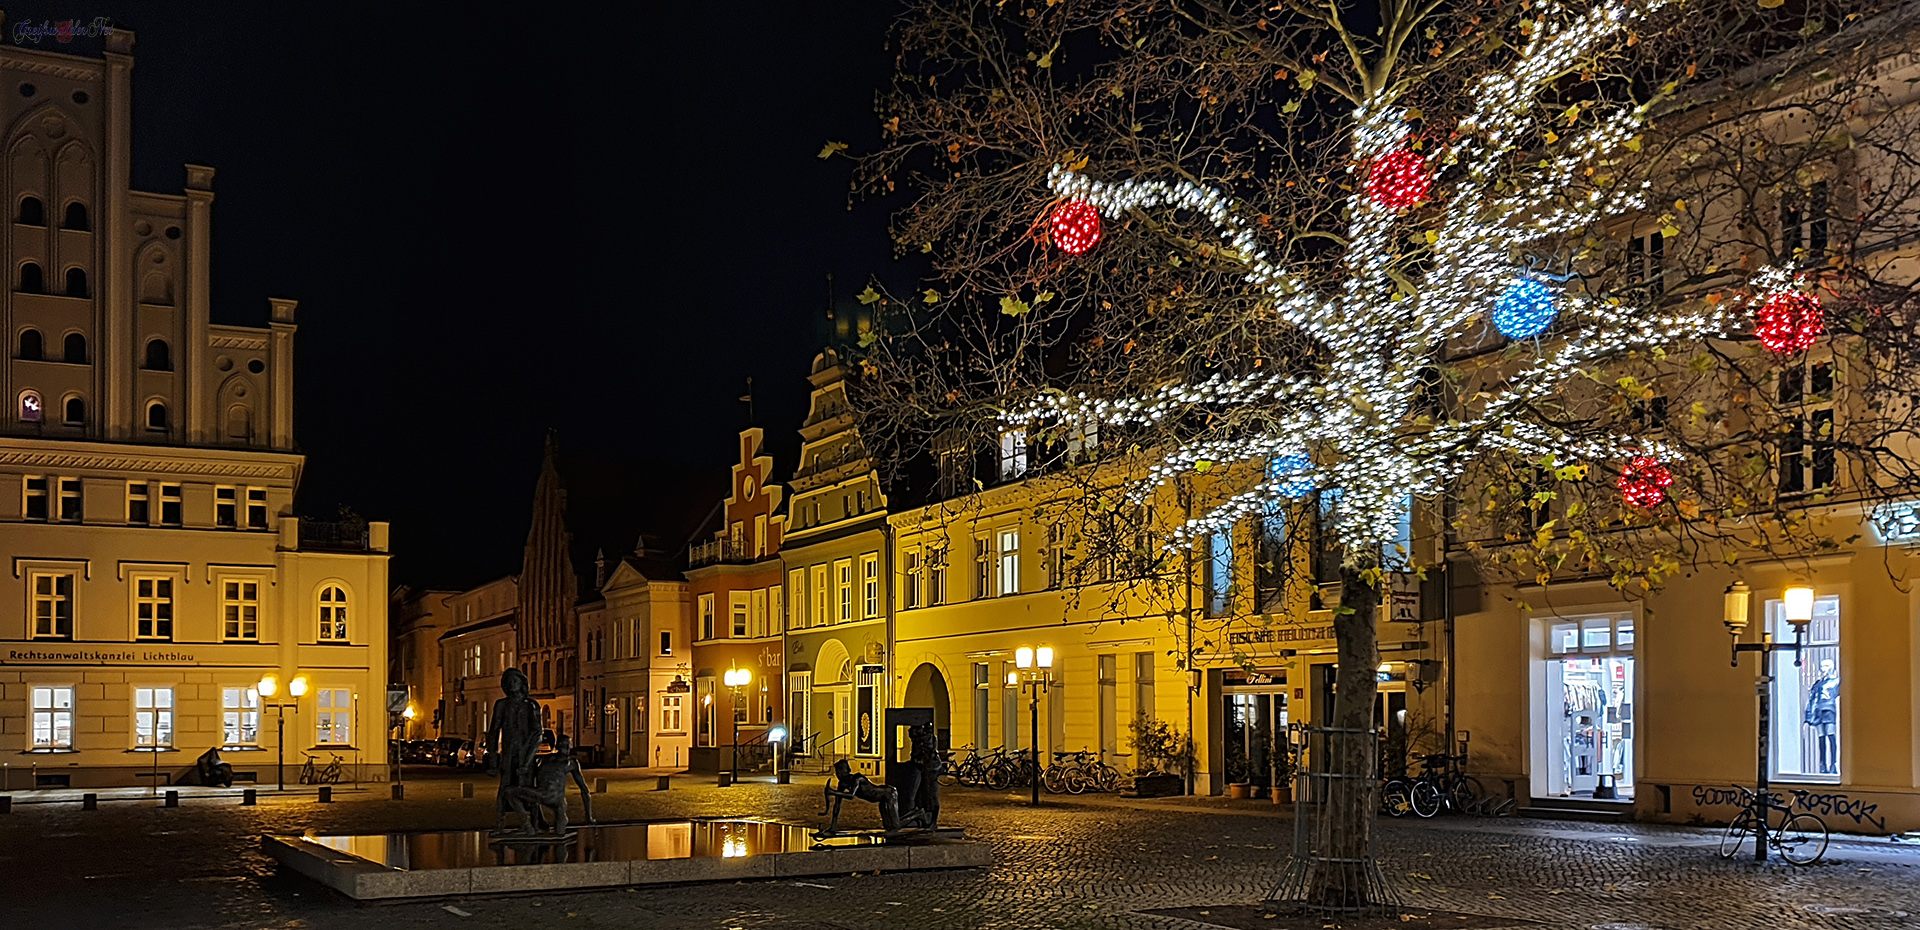 Adventssonntag-Abend in Greifswald